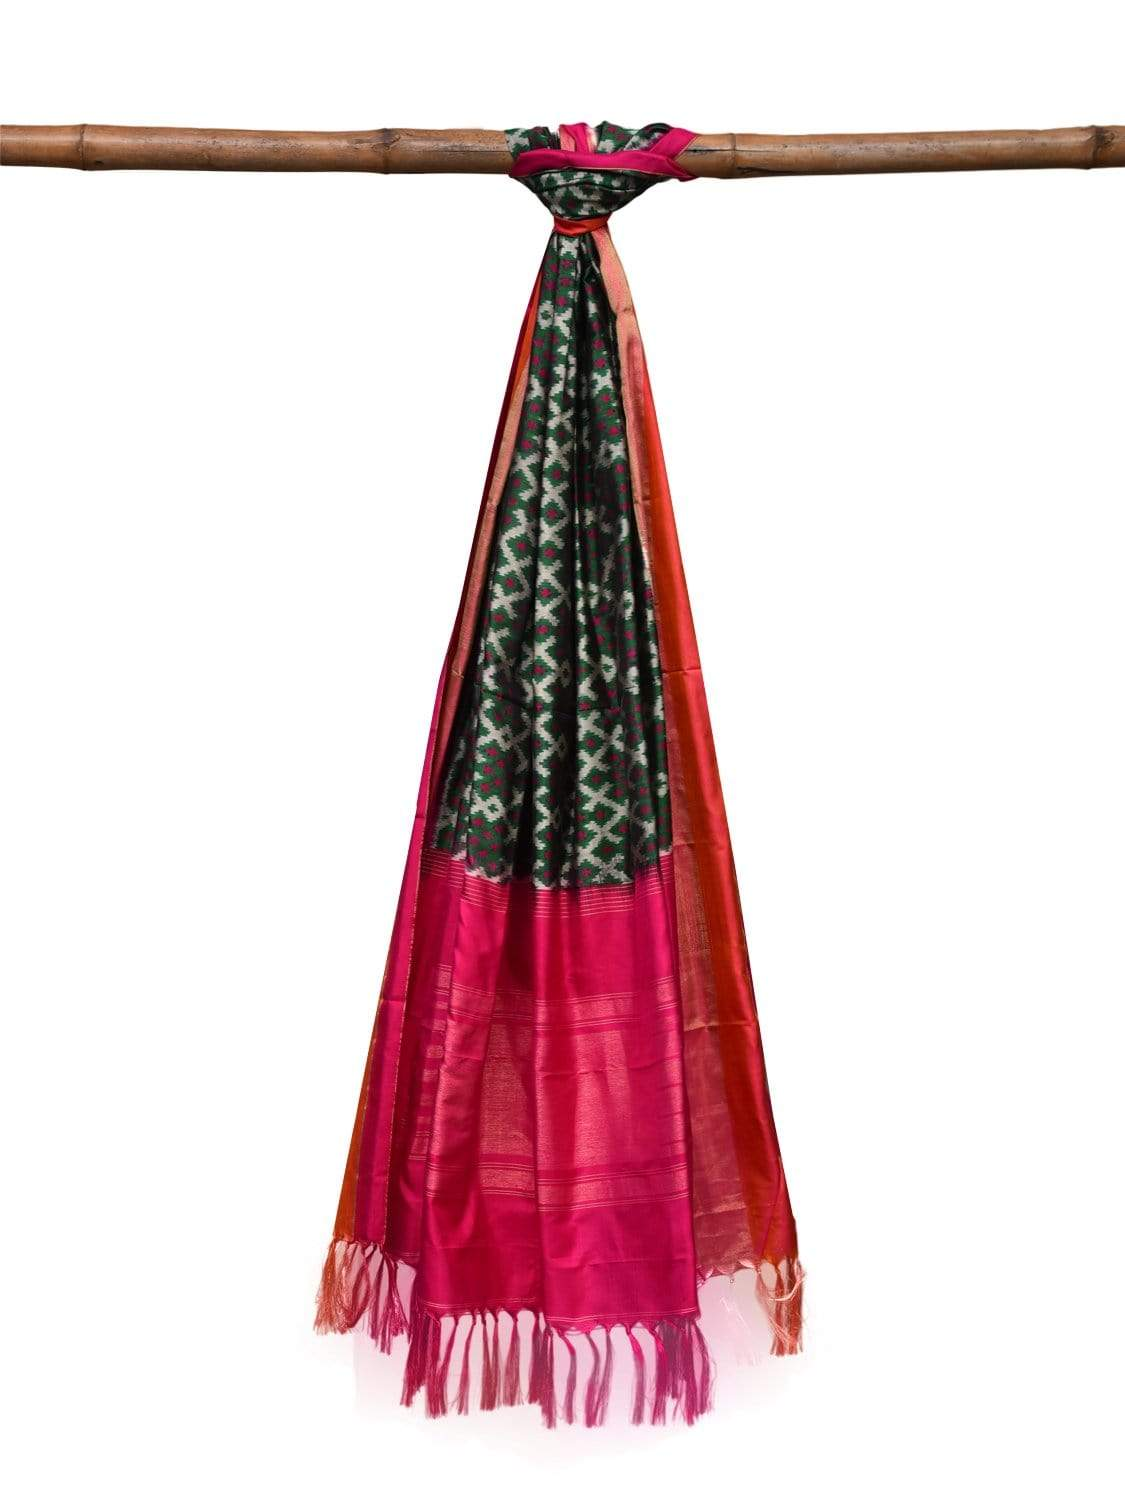 Blue and Pink Pochampally Ikat Silk Handloom Dupatta with All Over Design ds2039